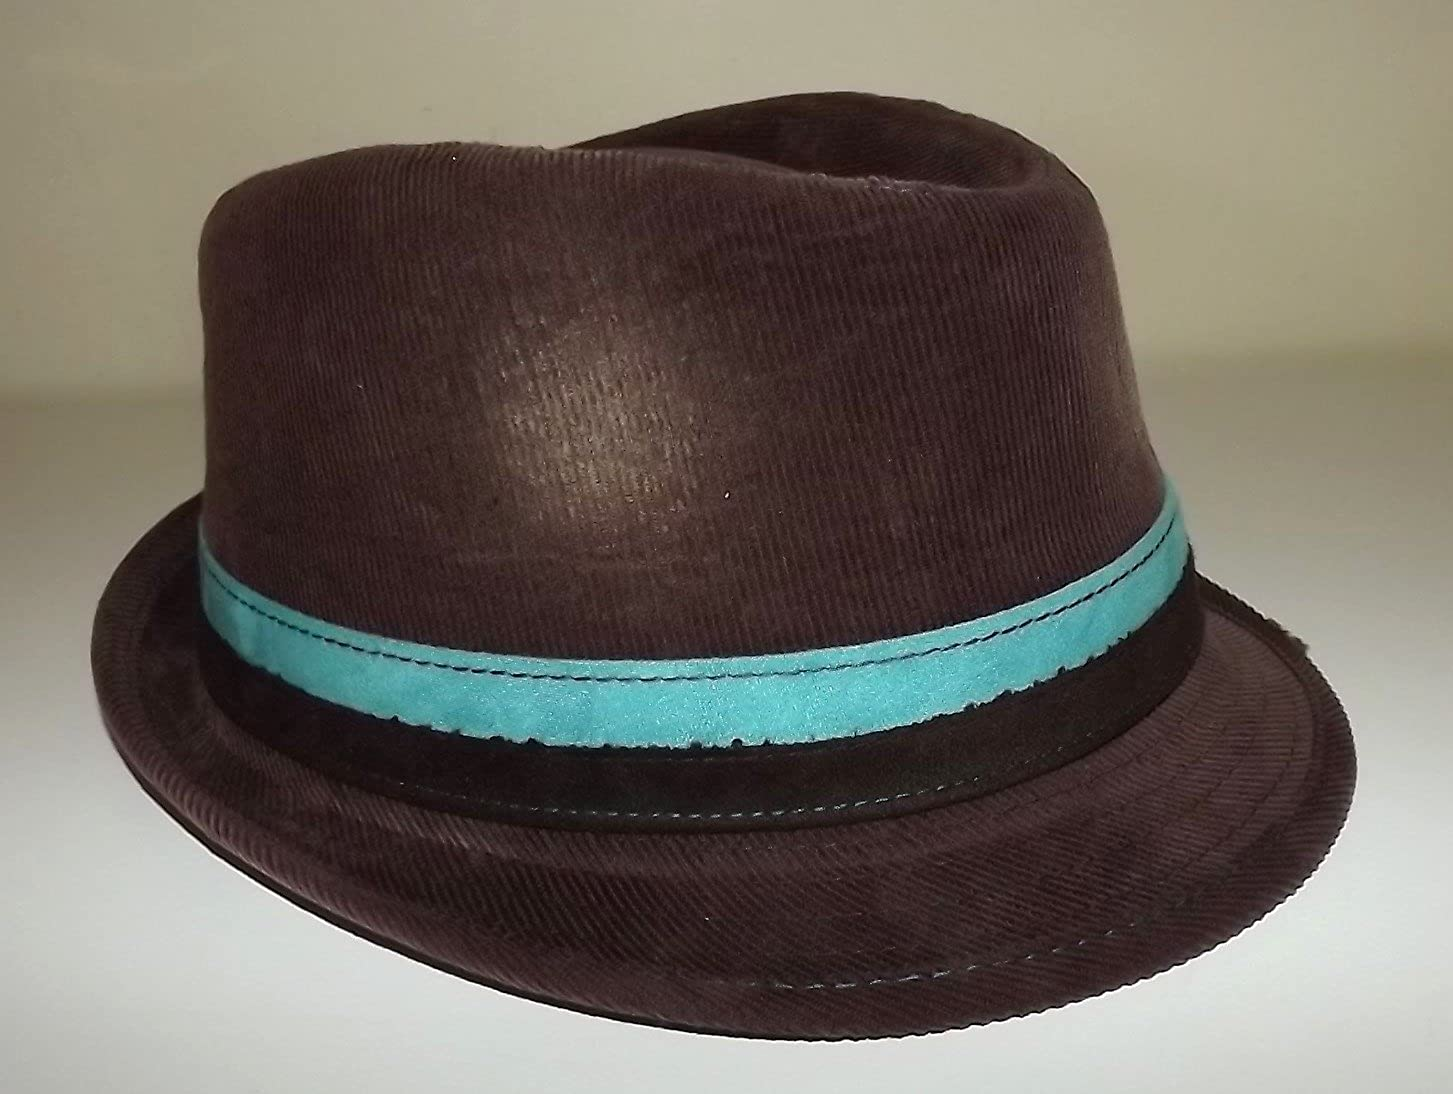 Daniel Cremieux Mens Cotton Twill Fedora Hat Brown Aqua Band Medium//Large